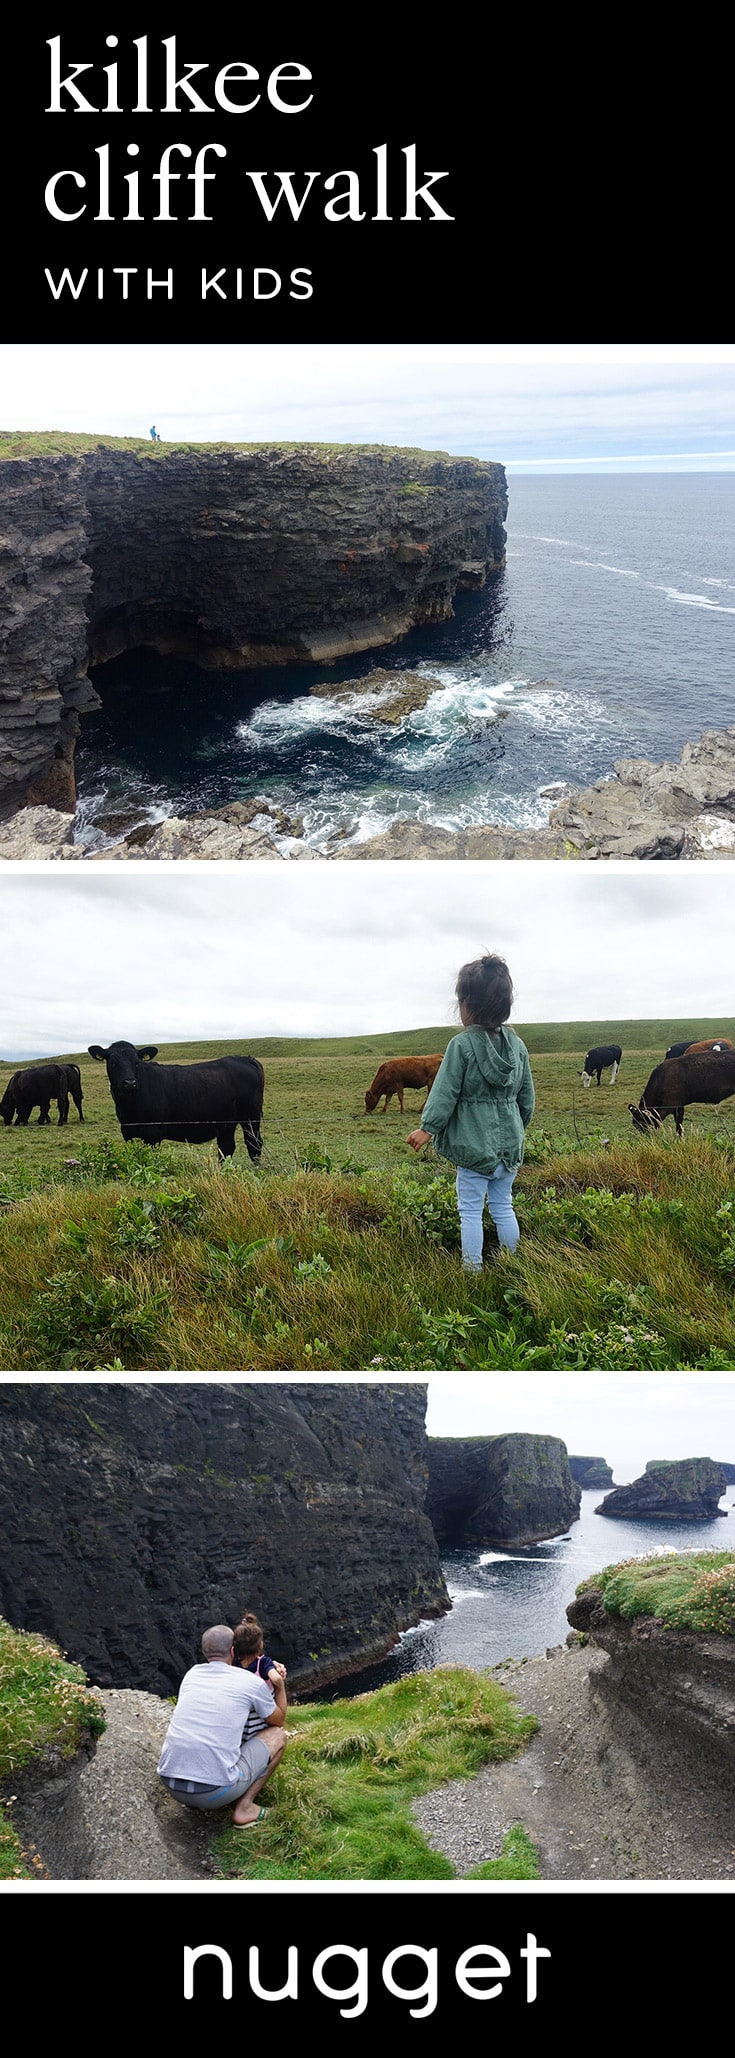 Kilkee Cliff Walk With Kids